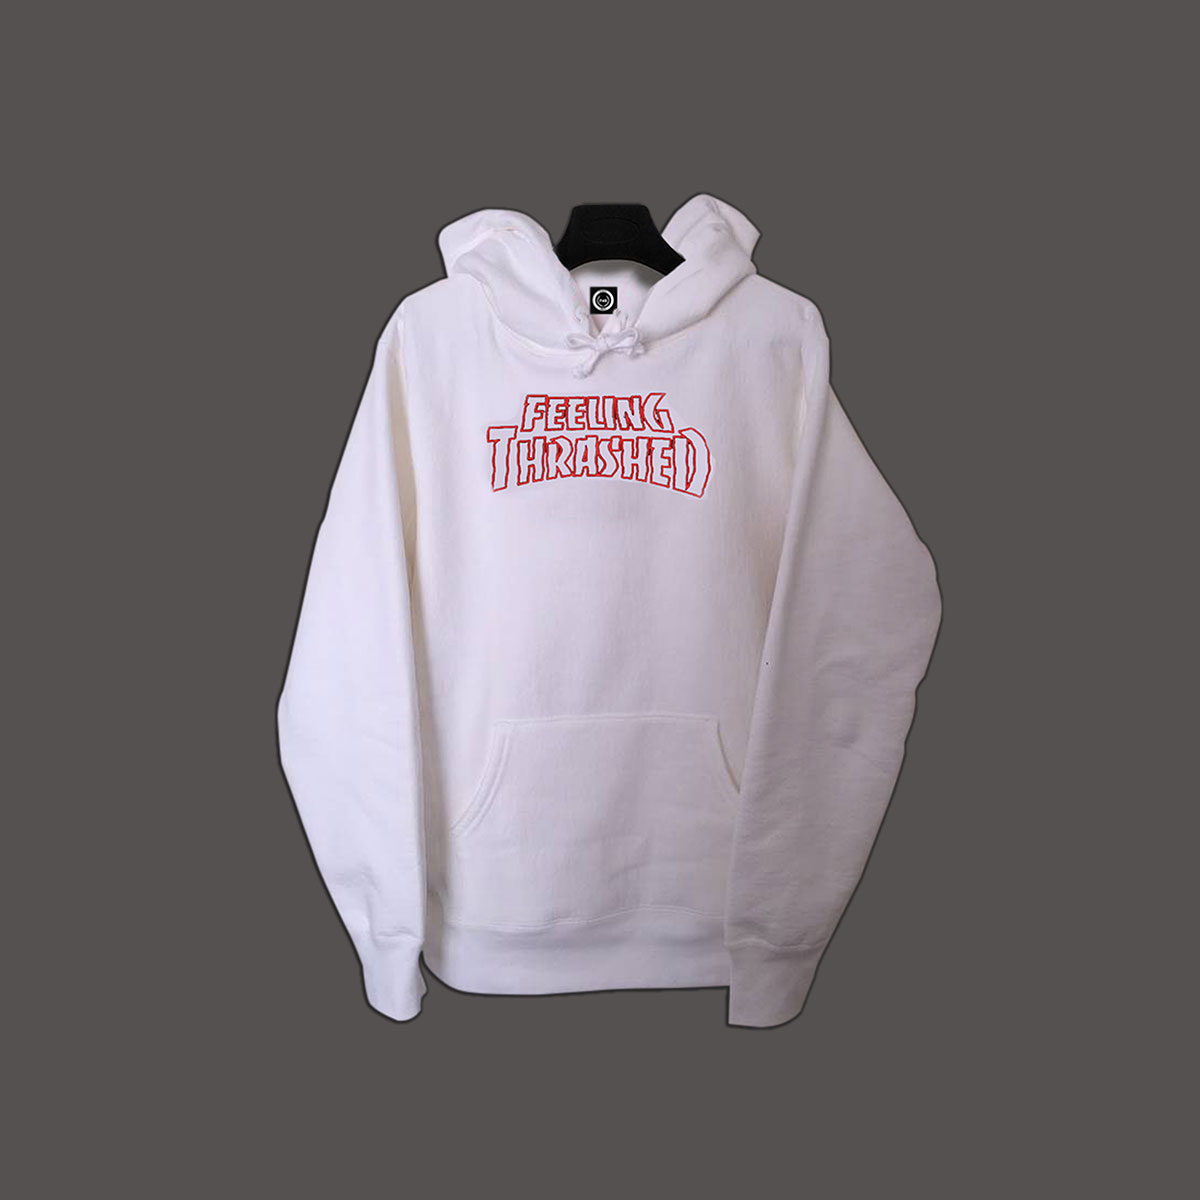 Feeling Thrashed Pullover Hoodie - White